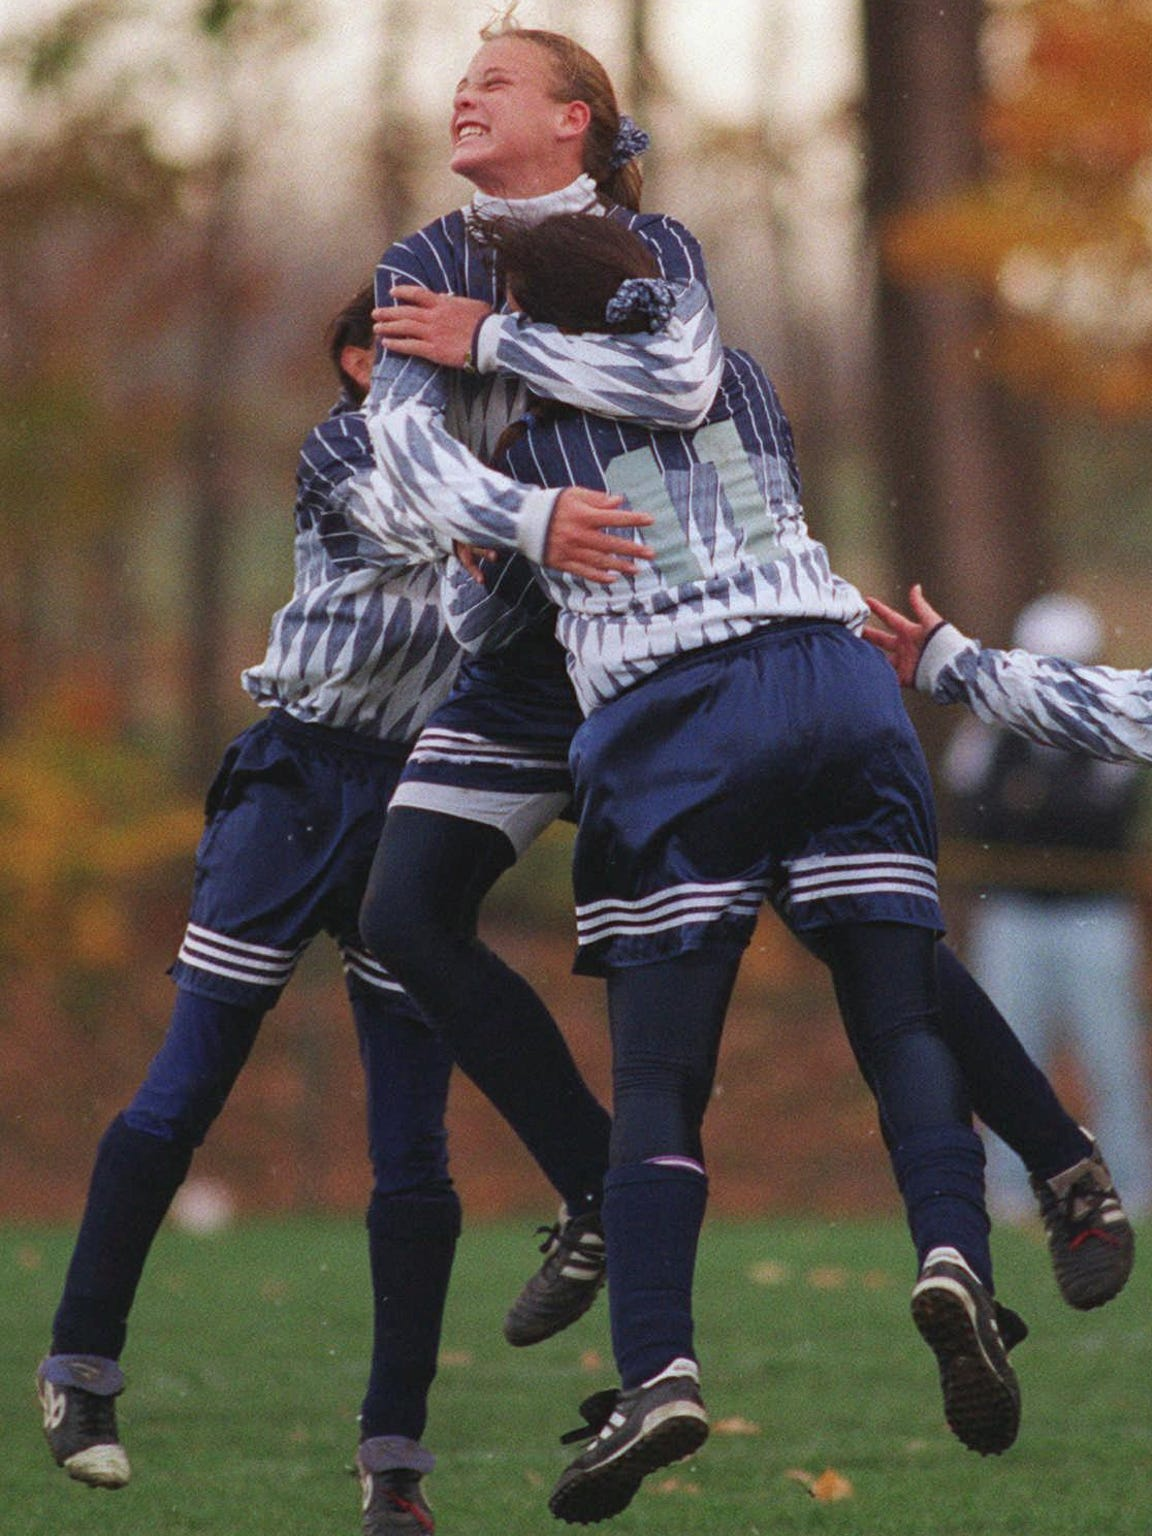 Teammates swarm Abby Wambach, center, after she scored a goal against  Greece Athena on Nov. 4, 1995. Wambach later scored on a penalty kick and saved one as a goalkeeper in the final minutes to lead Mercy to the Section V Class A championship.